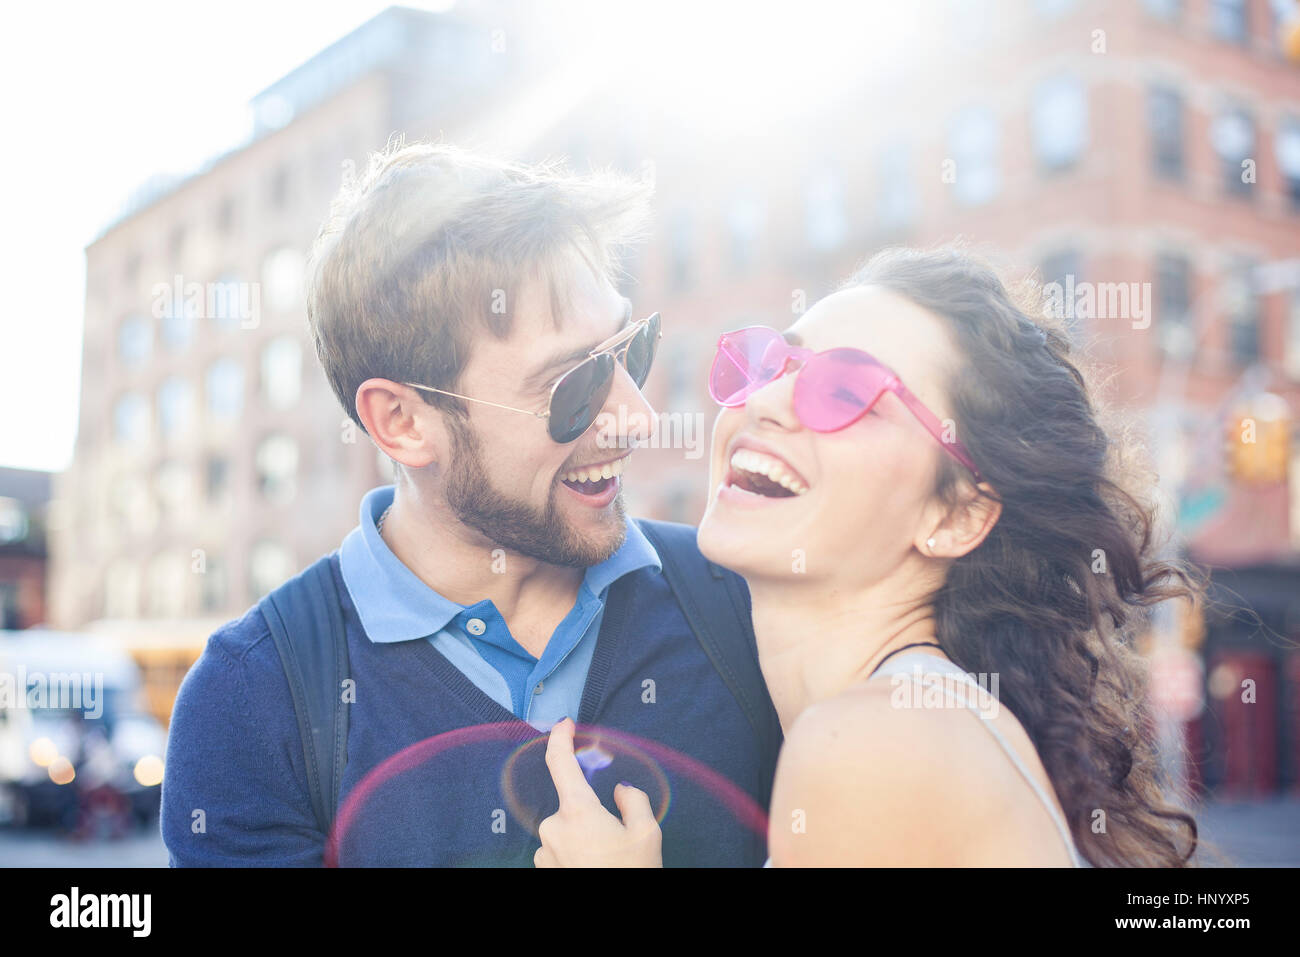 Couple laughing together outdoors Photo Stock